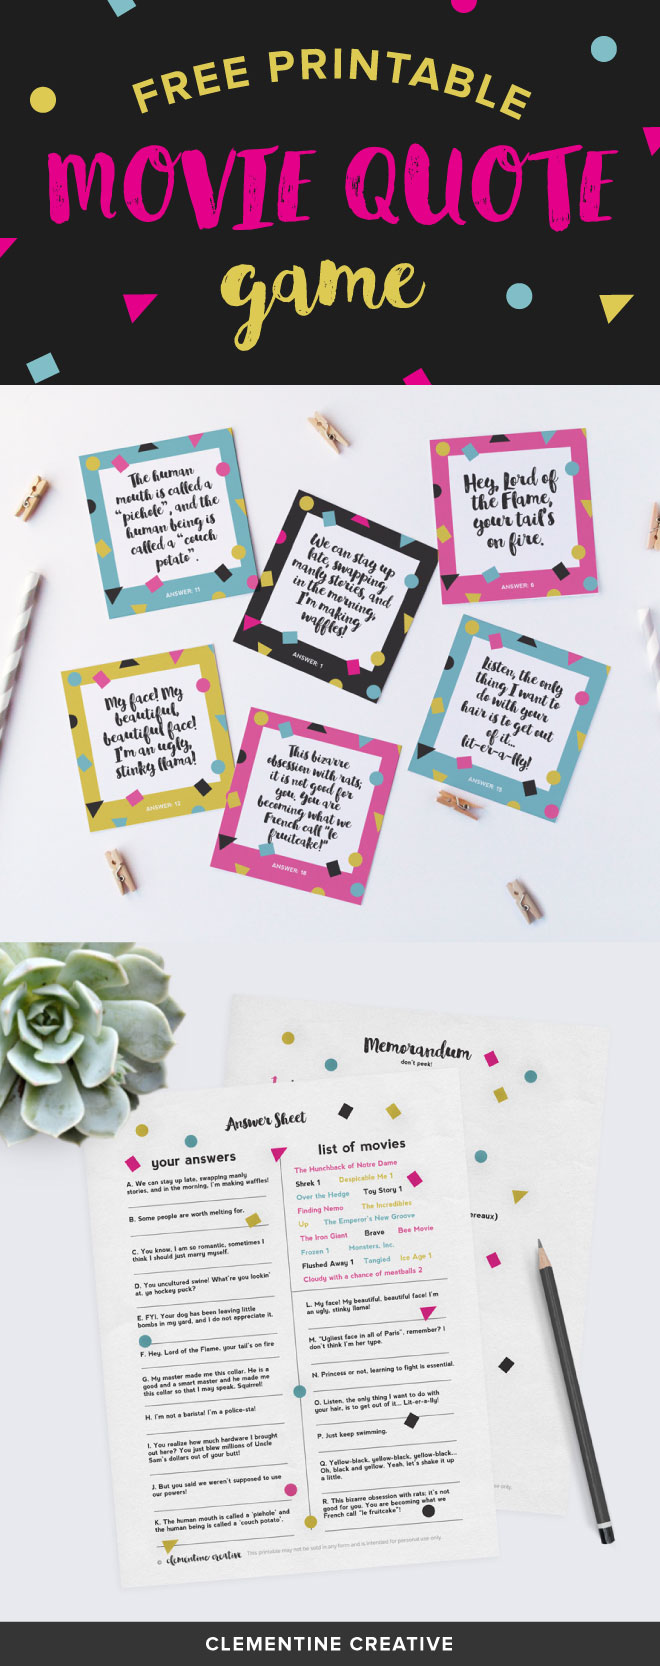 Entertain your friends with this game on game nights, movie nights, birthday parties, etc. Download this free printable animated movie quote game here.